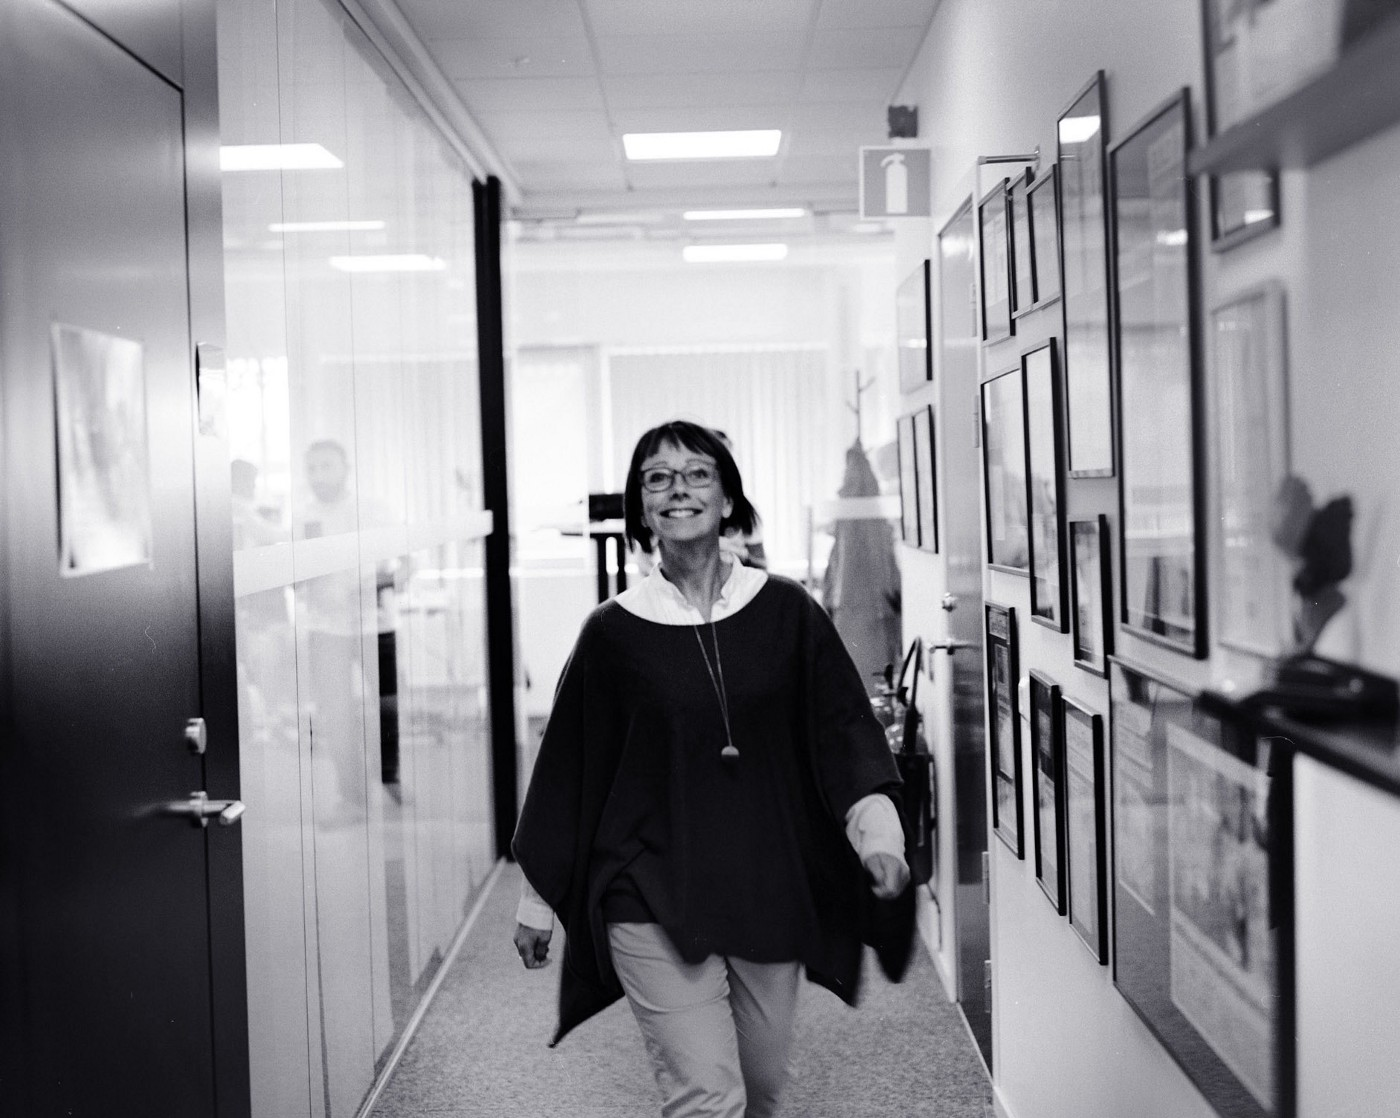 Happy woman walking towards the camera in an office.